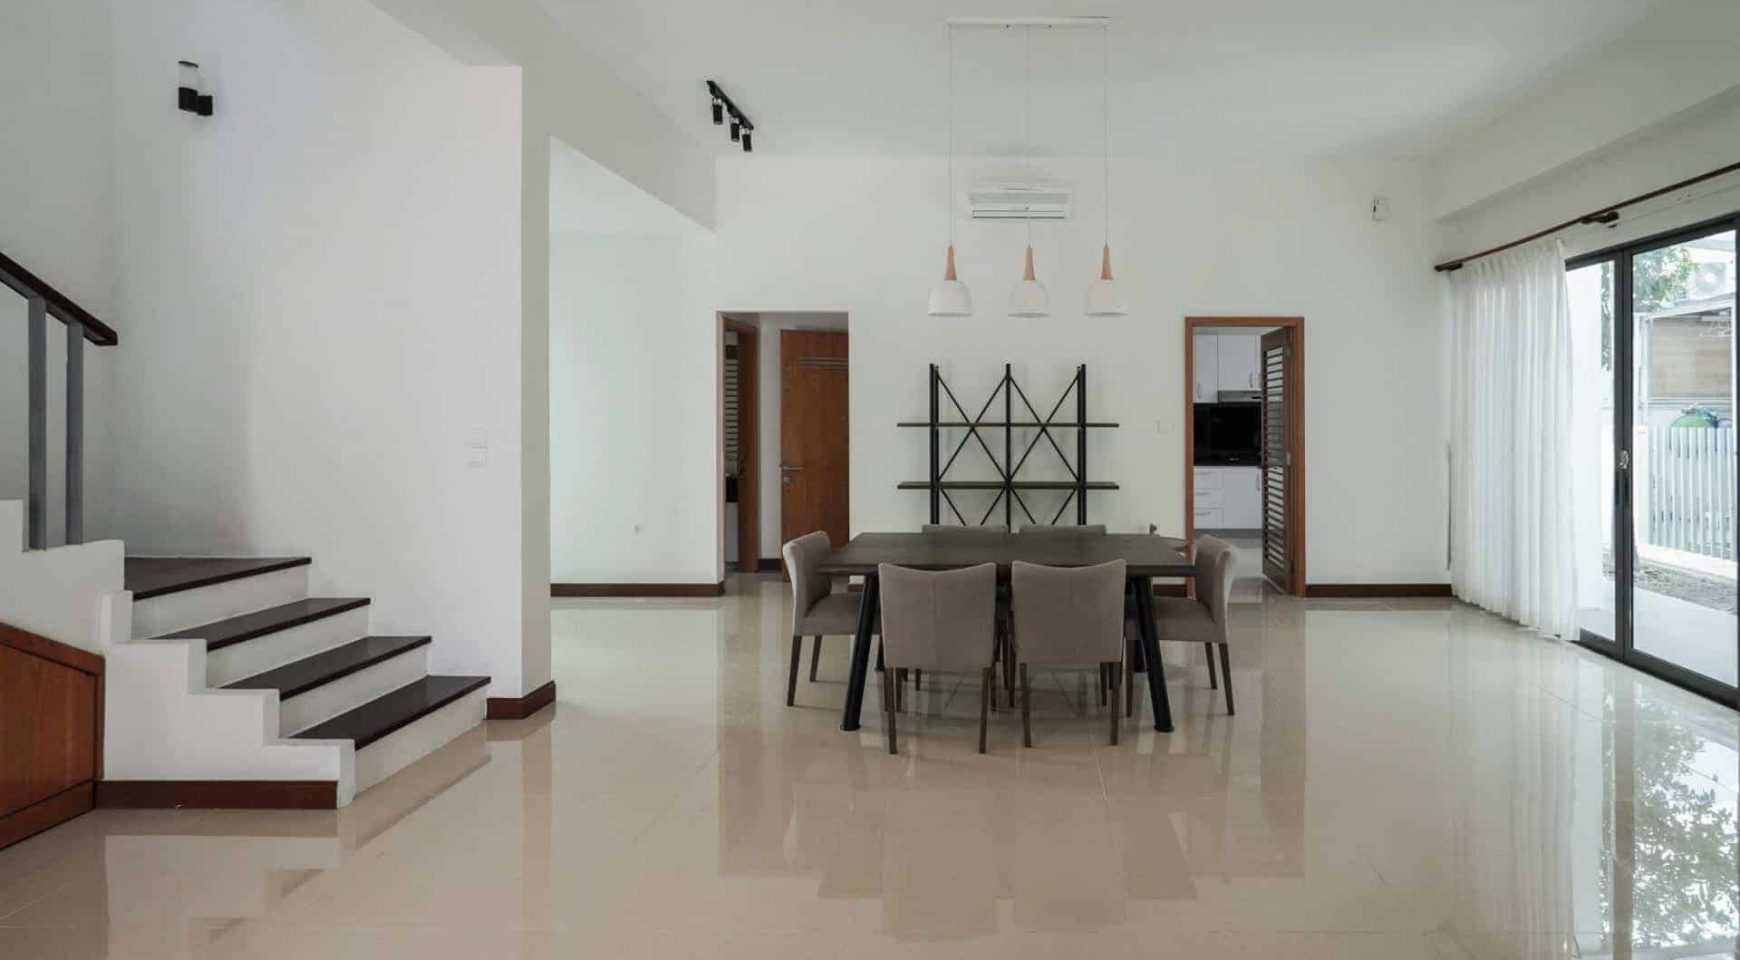 Riviera Villa For Rent 5 Bedrooms And Basic Furniture Chintaisaigon